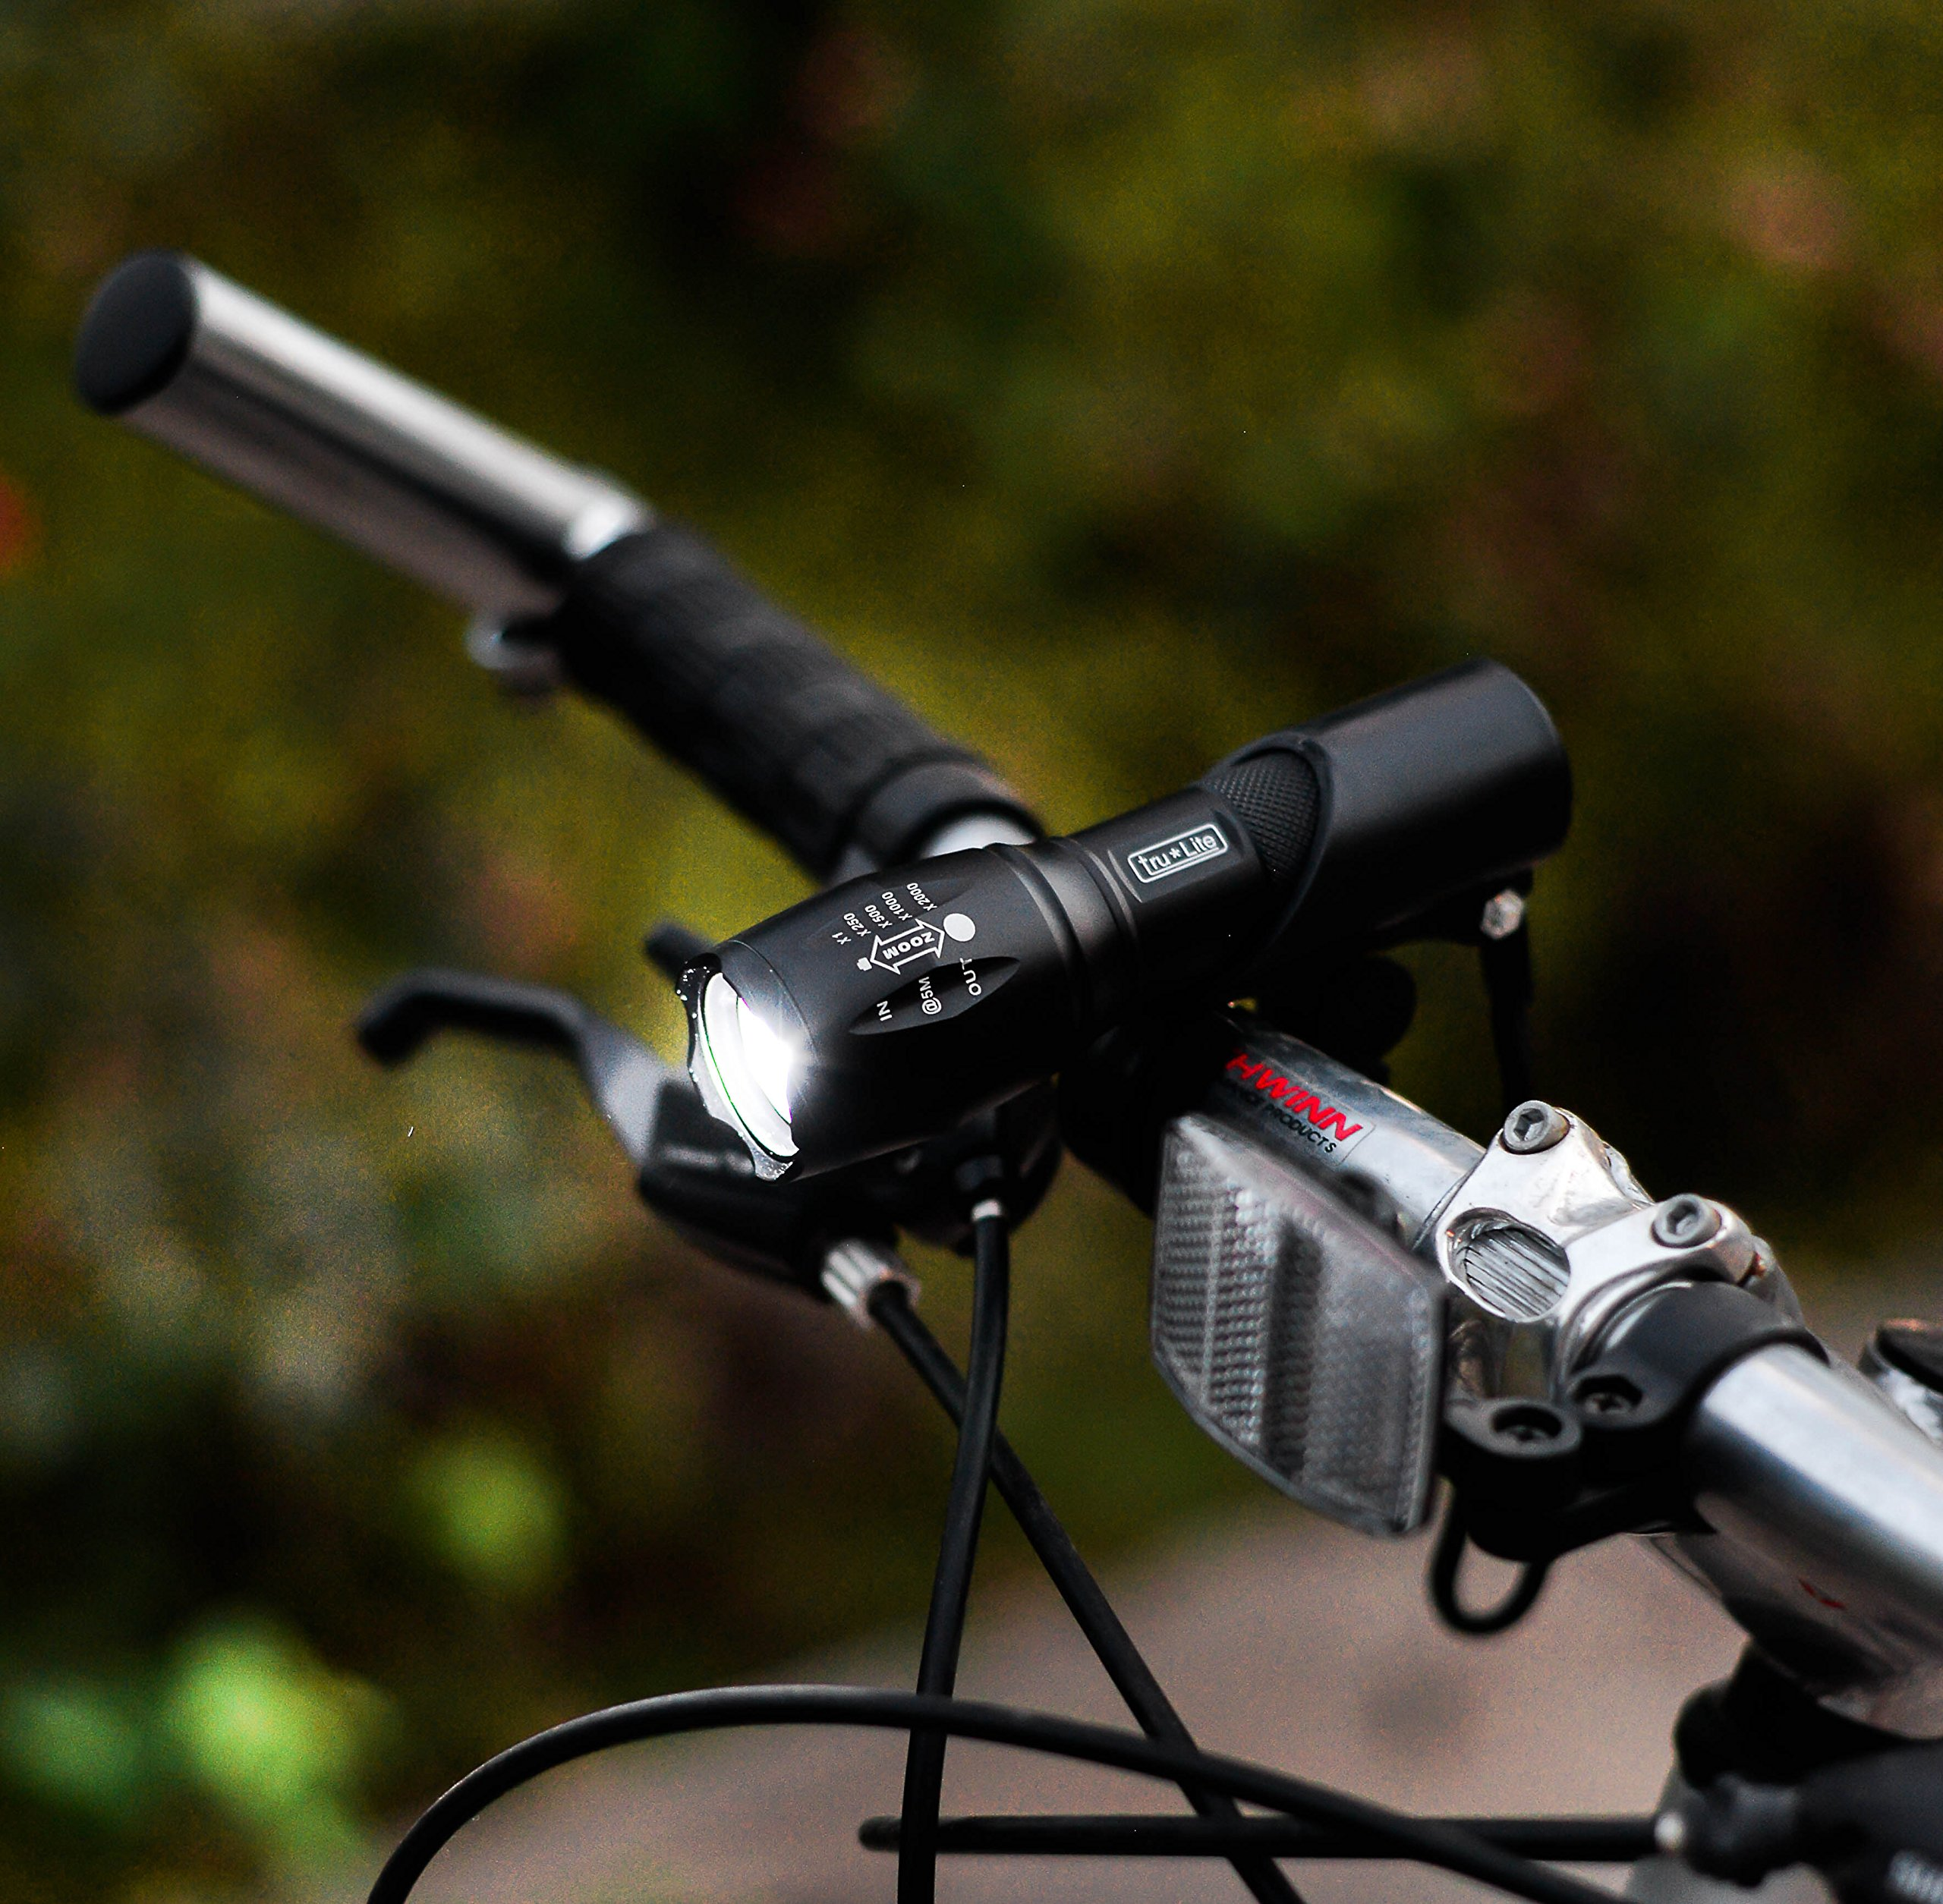 tru*Lite Bike Light Set-Super Bright 10W Removable Military Grade Tactical Flash Light-5 modes-1000+ Lumens-Zoom-5 LED Tail Light-7 modes-Water Resistant-Easy to Install-Life Time Warranty by tru*Lite (Image #2)